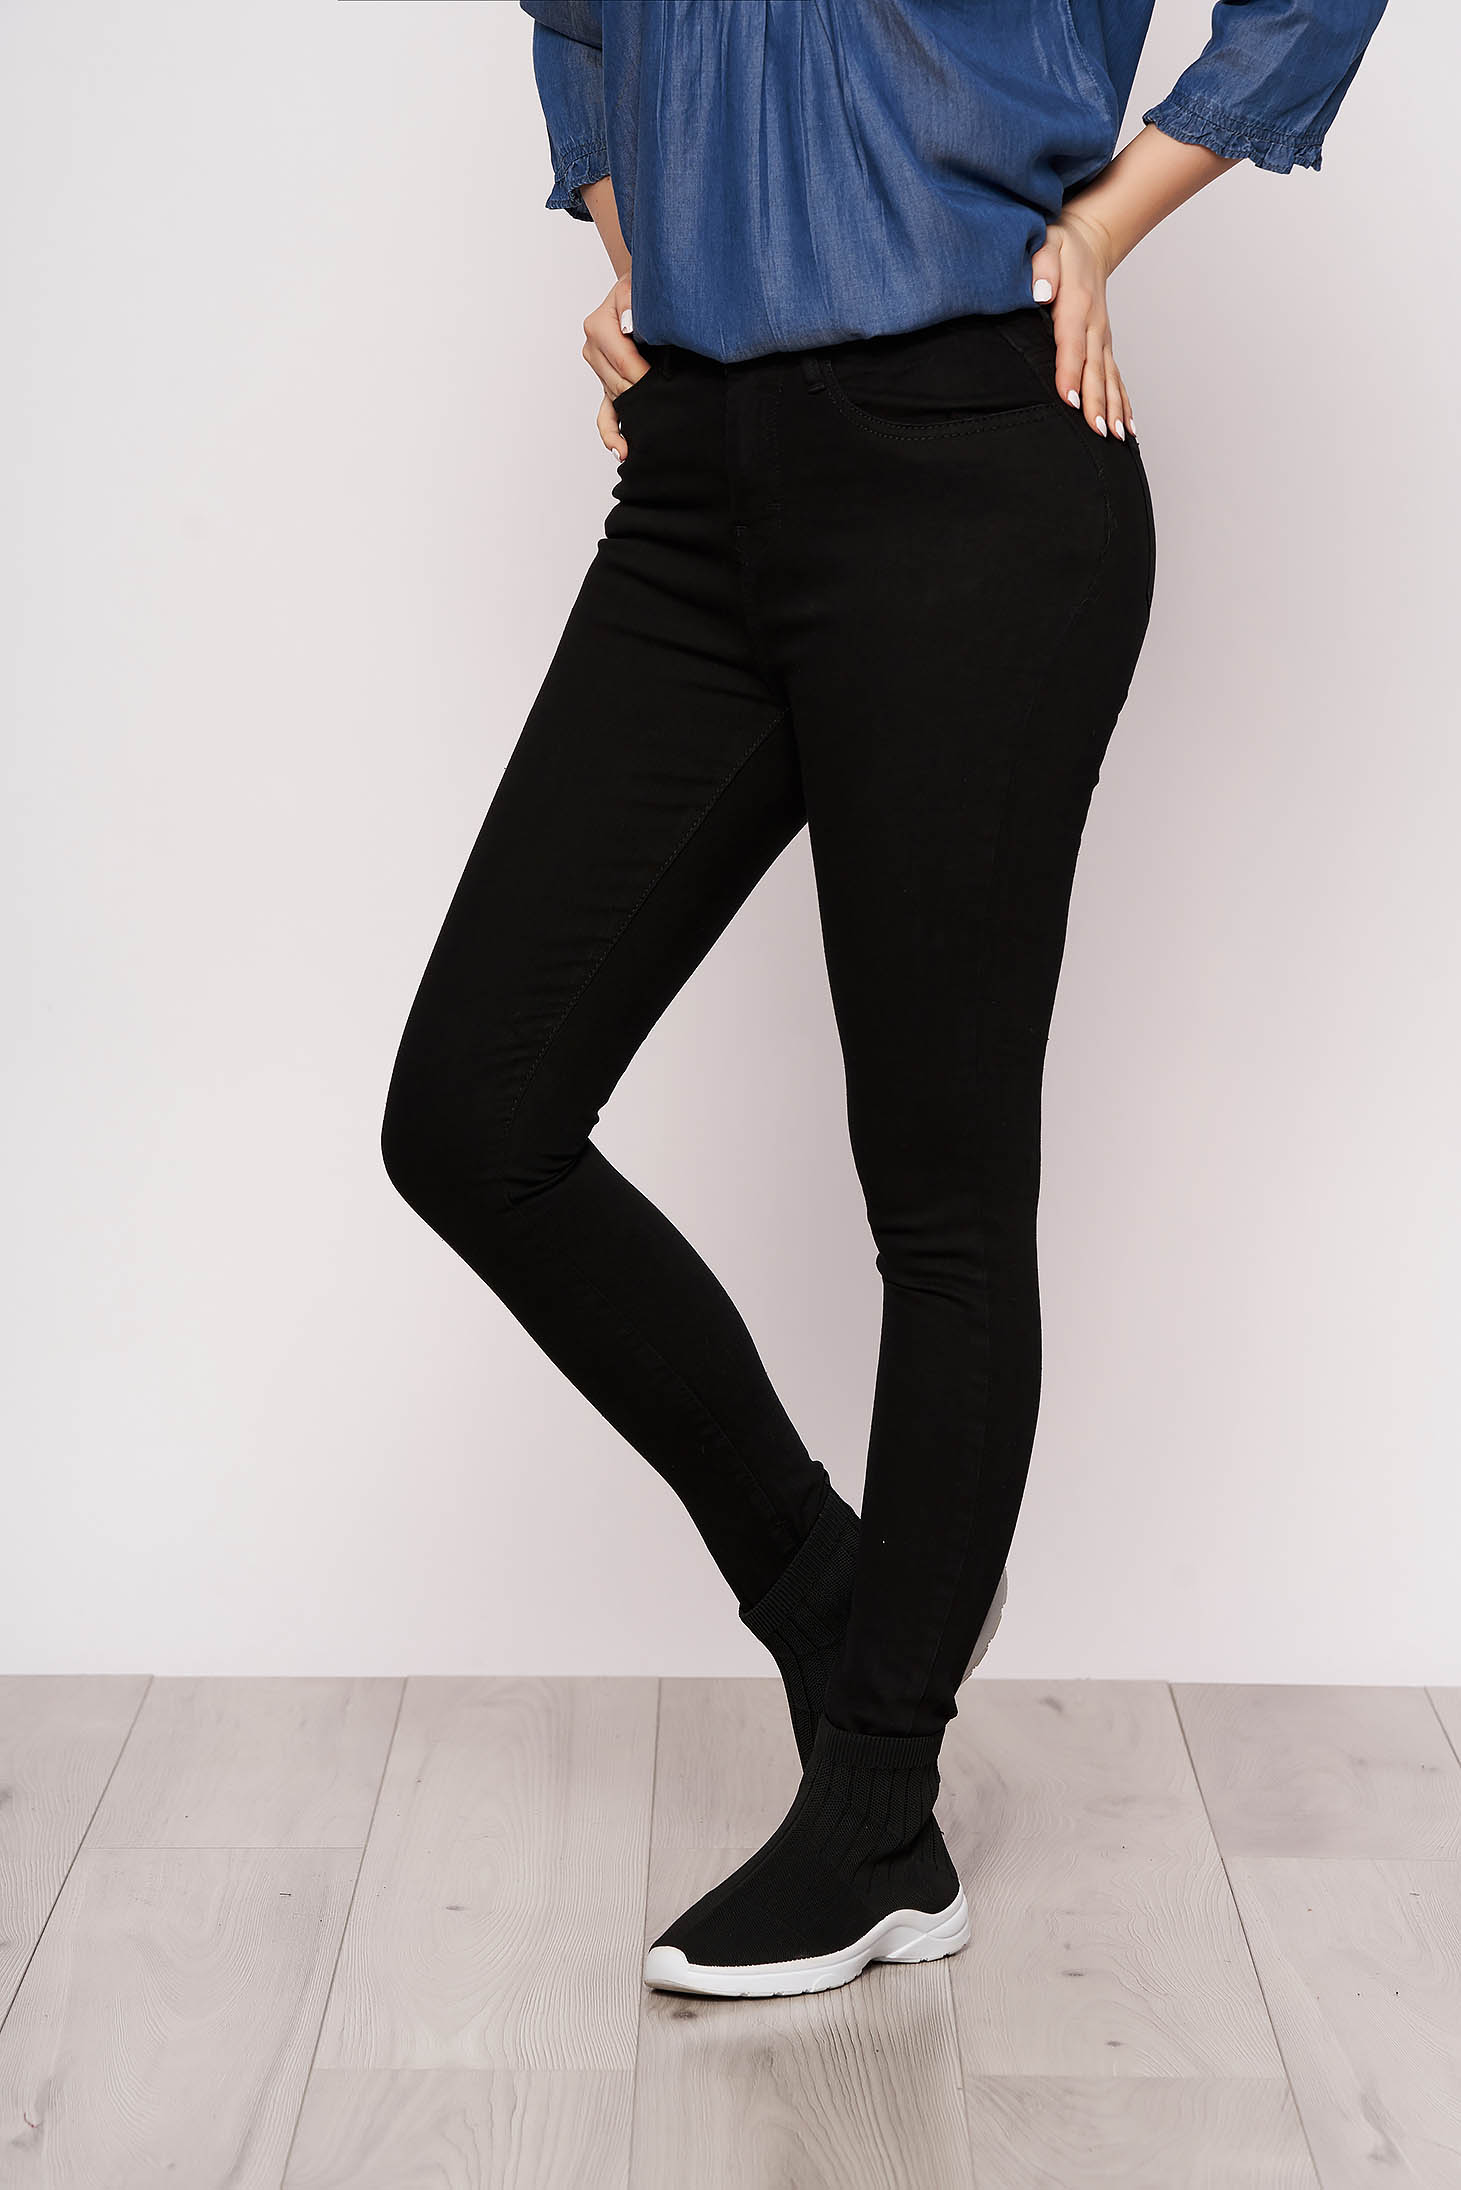 Black jeans denim casual high waisted with pockets